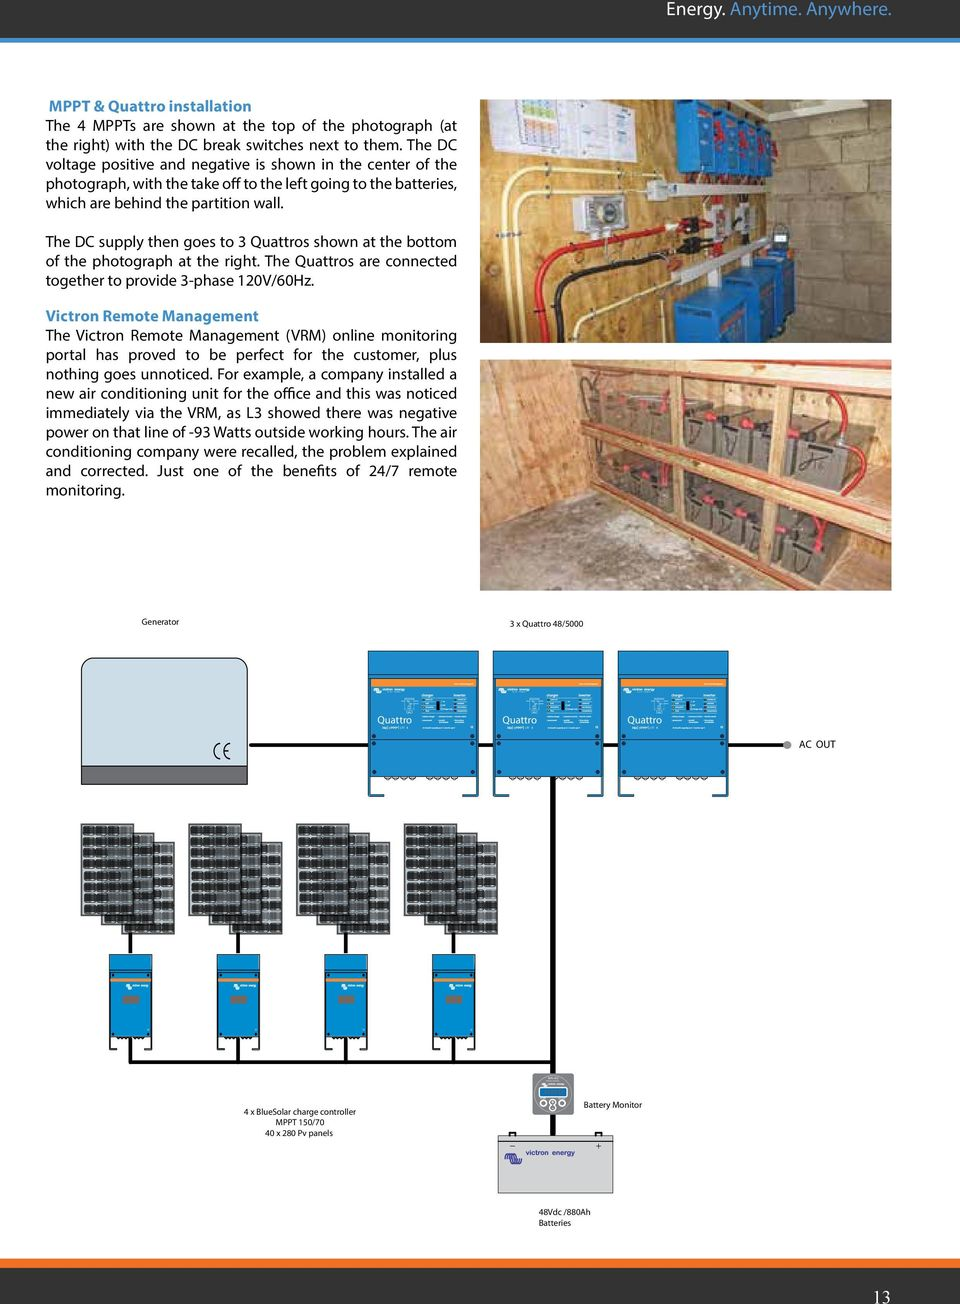 Off Grid Back Up Island Systems Energy Anytime Anywhere Pdf Mppt Controller Wiring Schematic Moreover Solar Charge The Dc Supply Then Goes To 3 Quattros Shown At Bottom Of Photograph